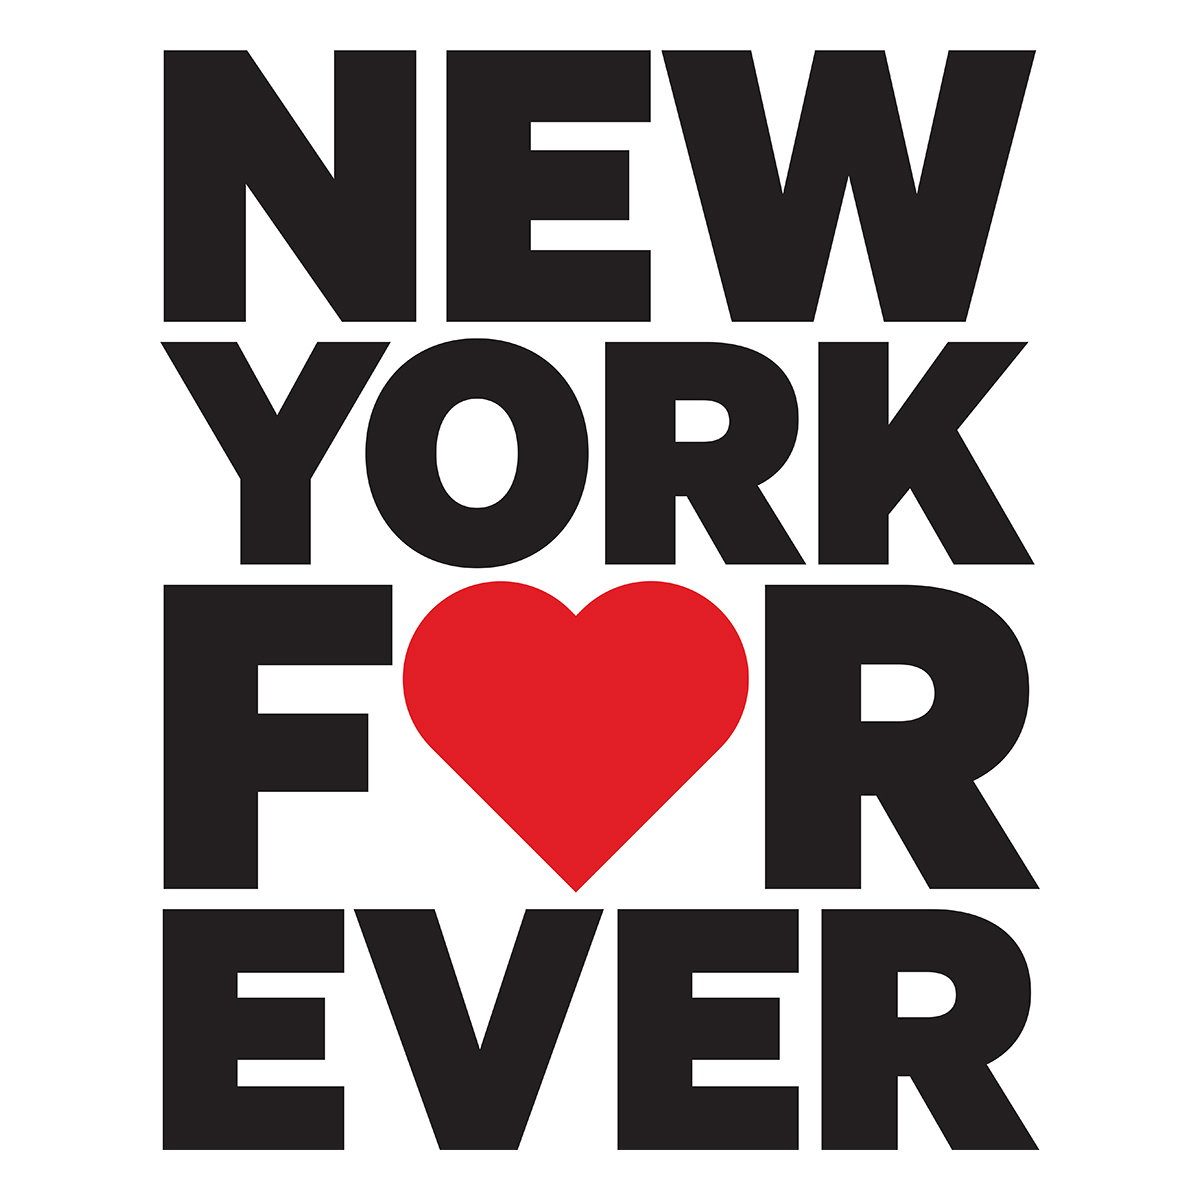 NYCxDESIGN Launches Uplifting Citywide Poster Campaign - An Ode To NYC